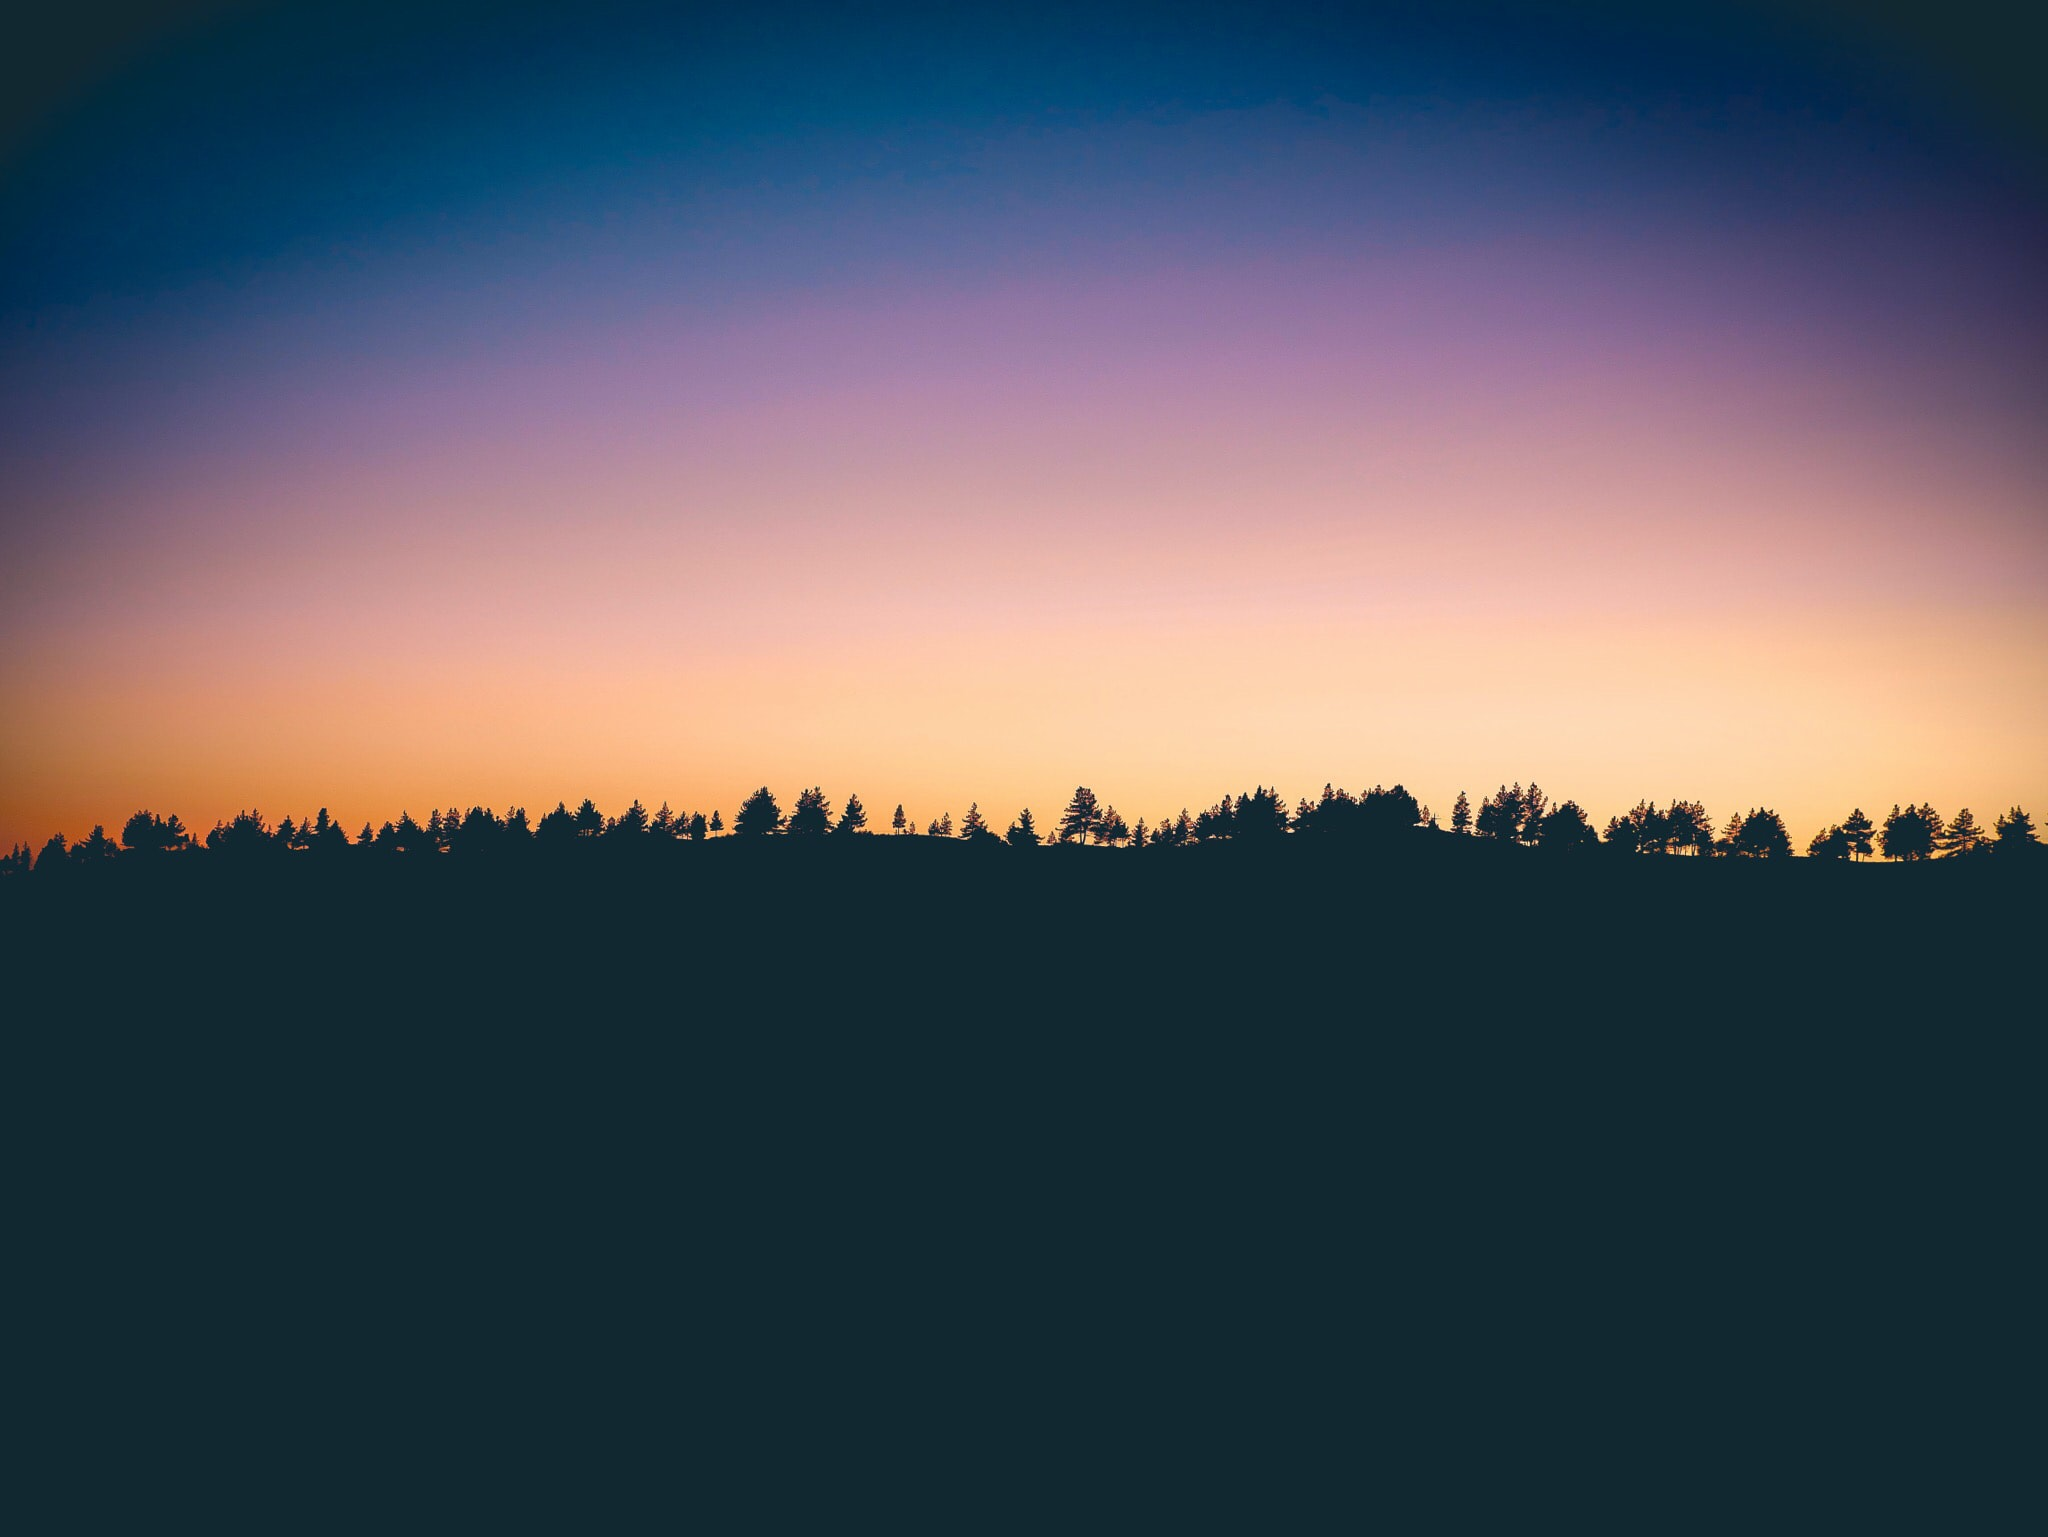 silhouette photo of trees at sunset